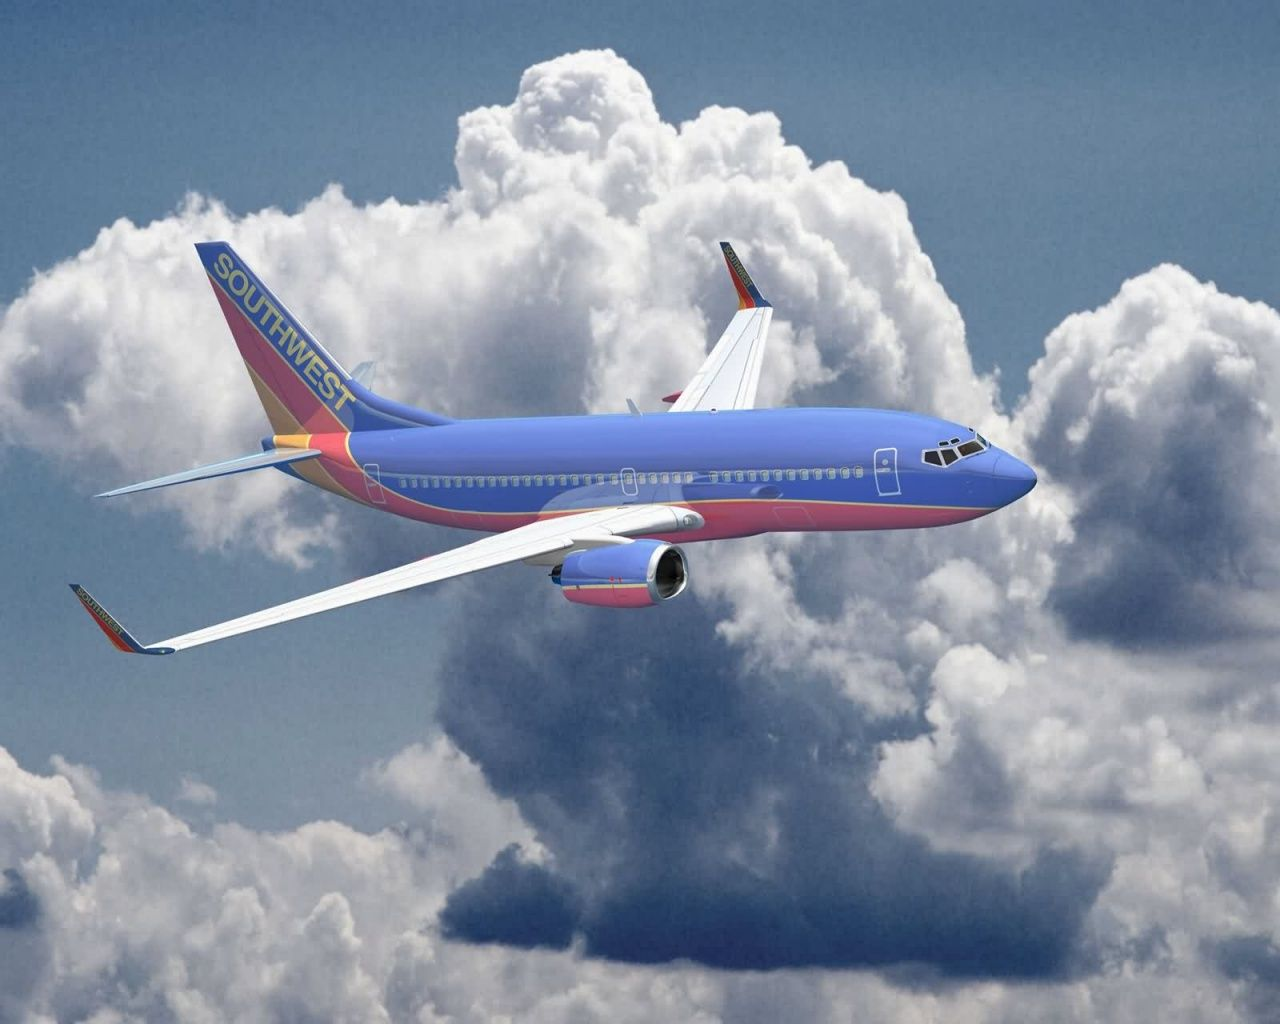 Pin By Patrick Simonet On Just Me Southwest Airlines Science Notebooks Airlines